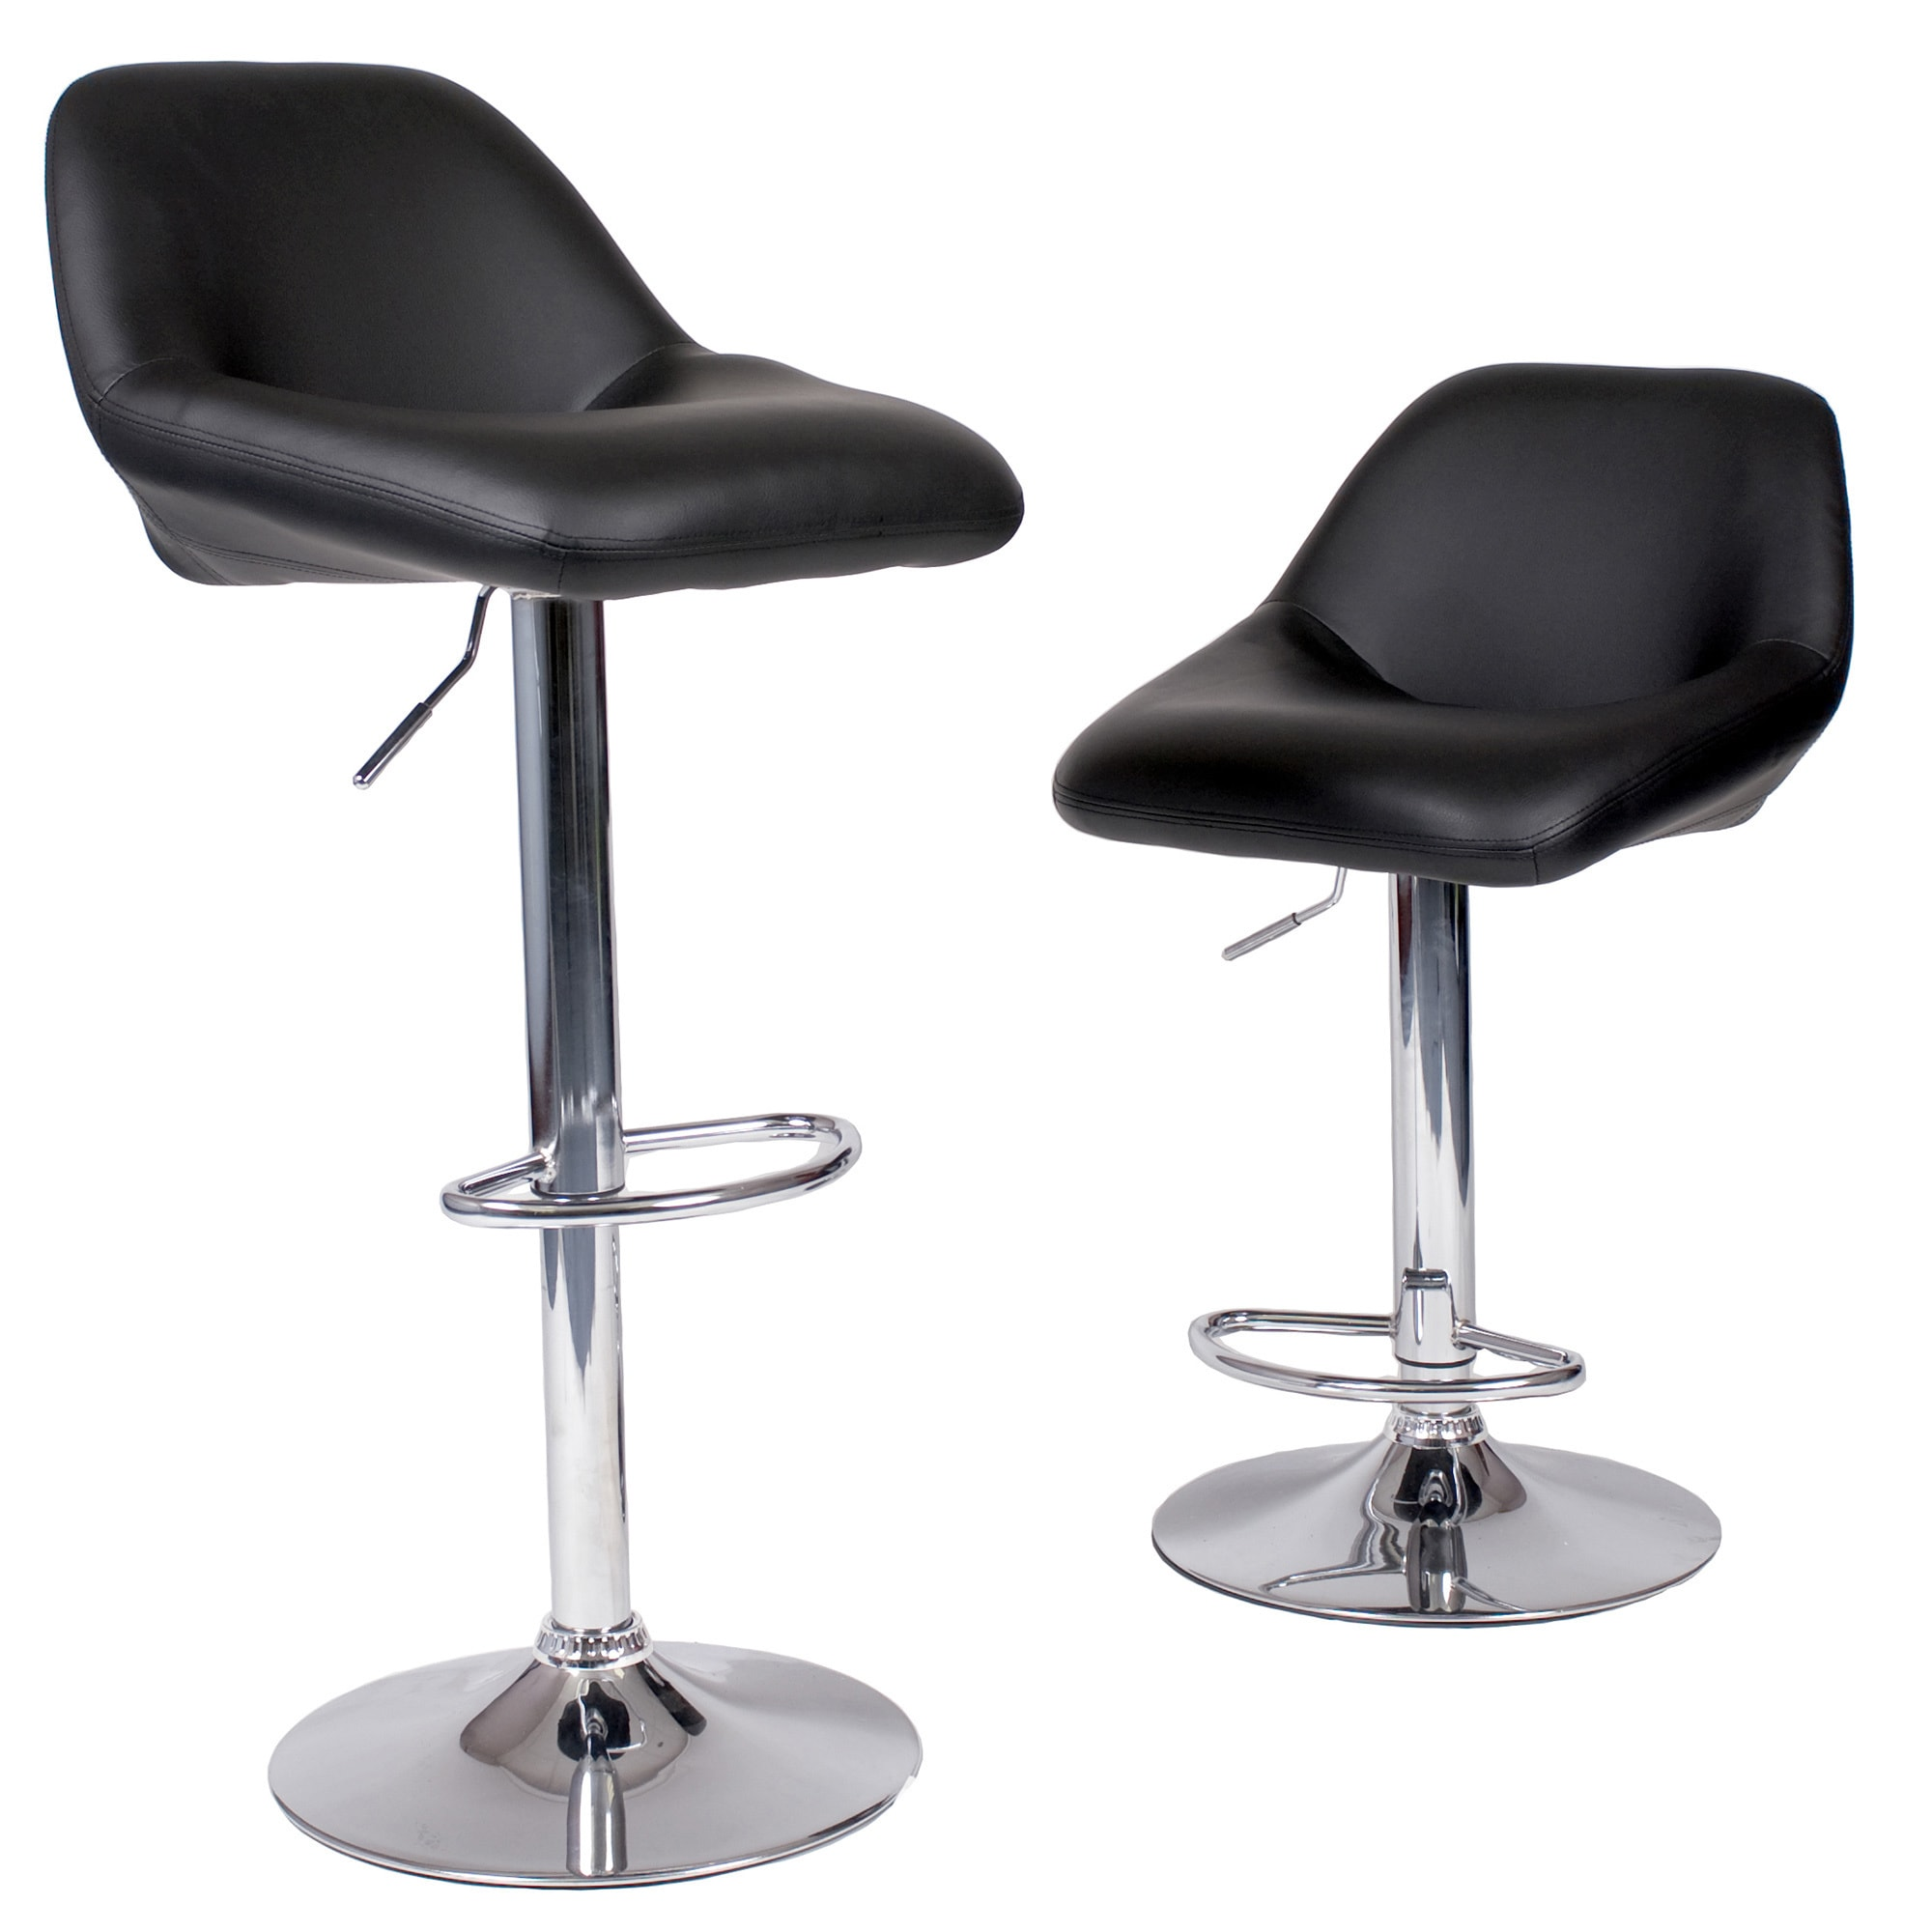 Shop maxii hydraulic swivel chrome bar stool set of 2 free shipping today overstock com 10868030